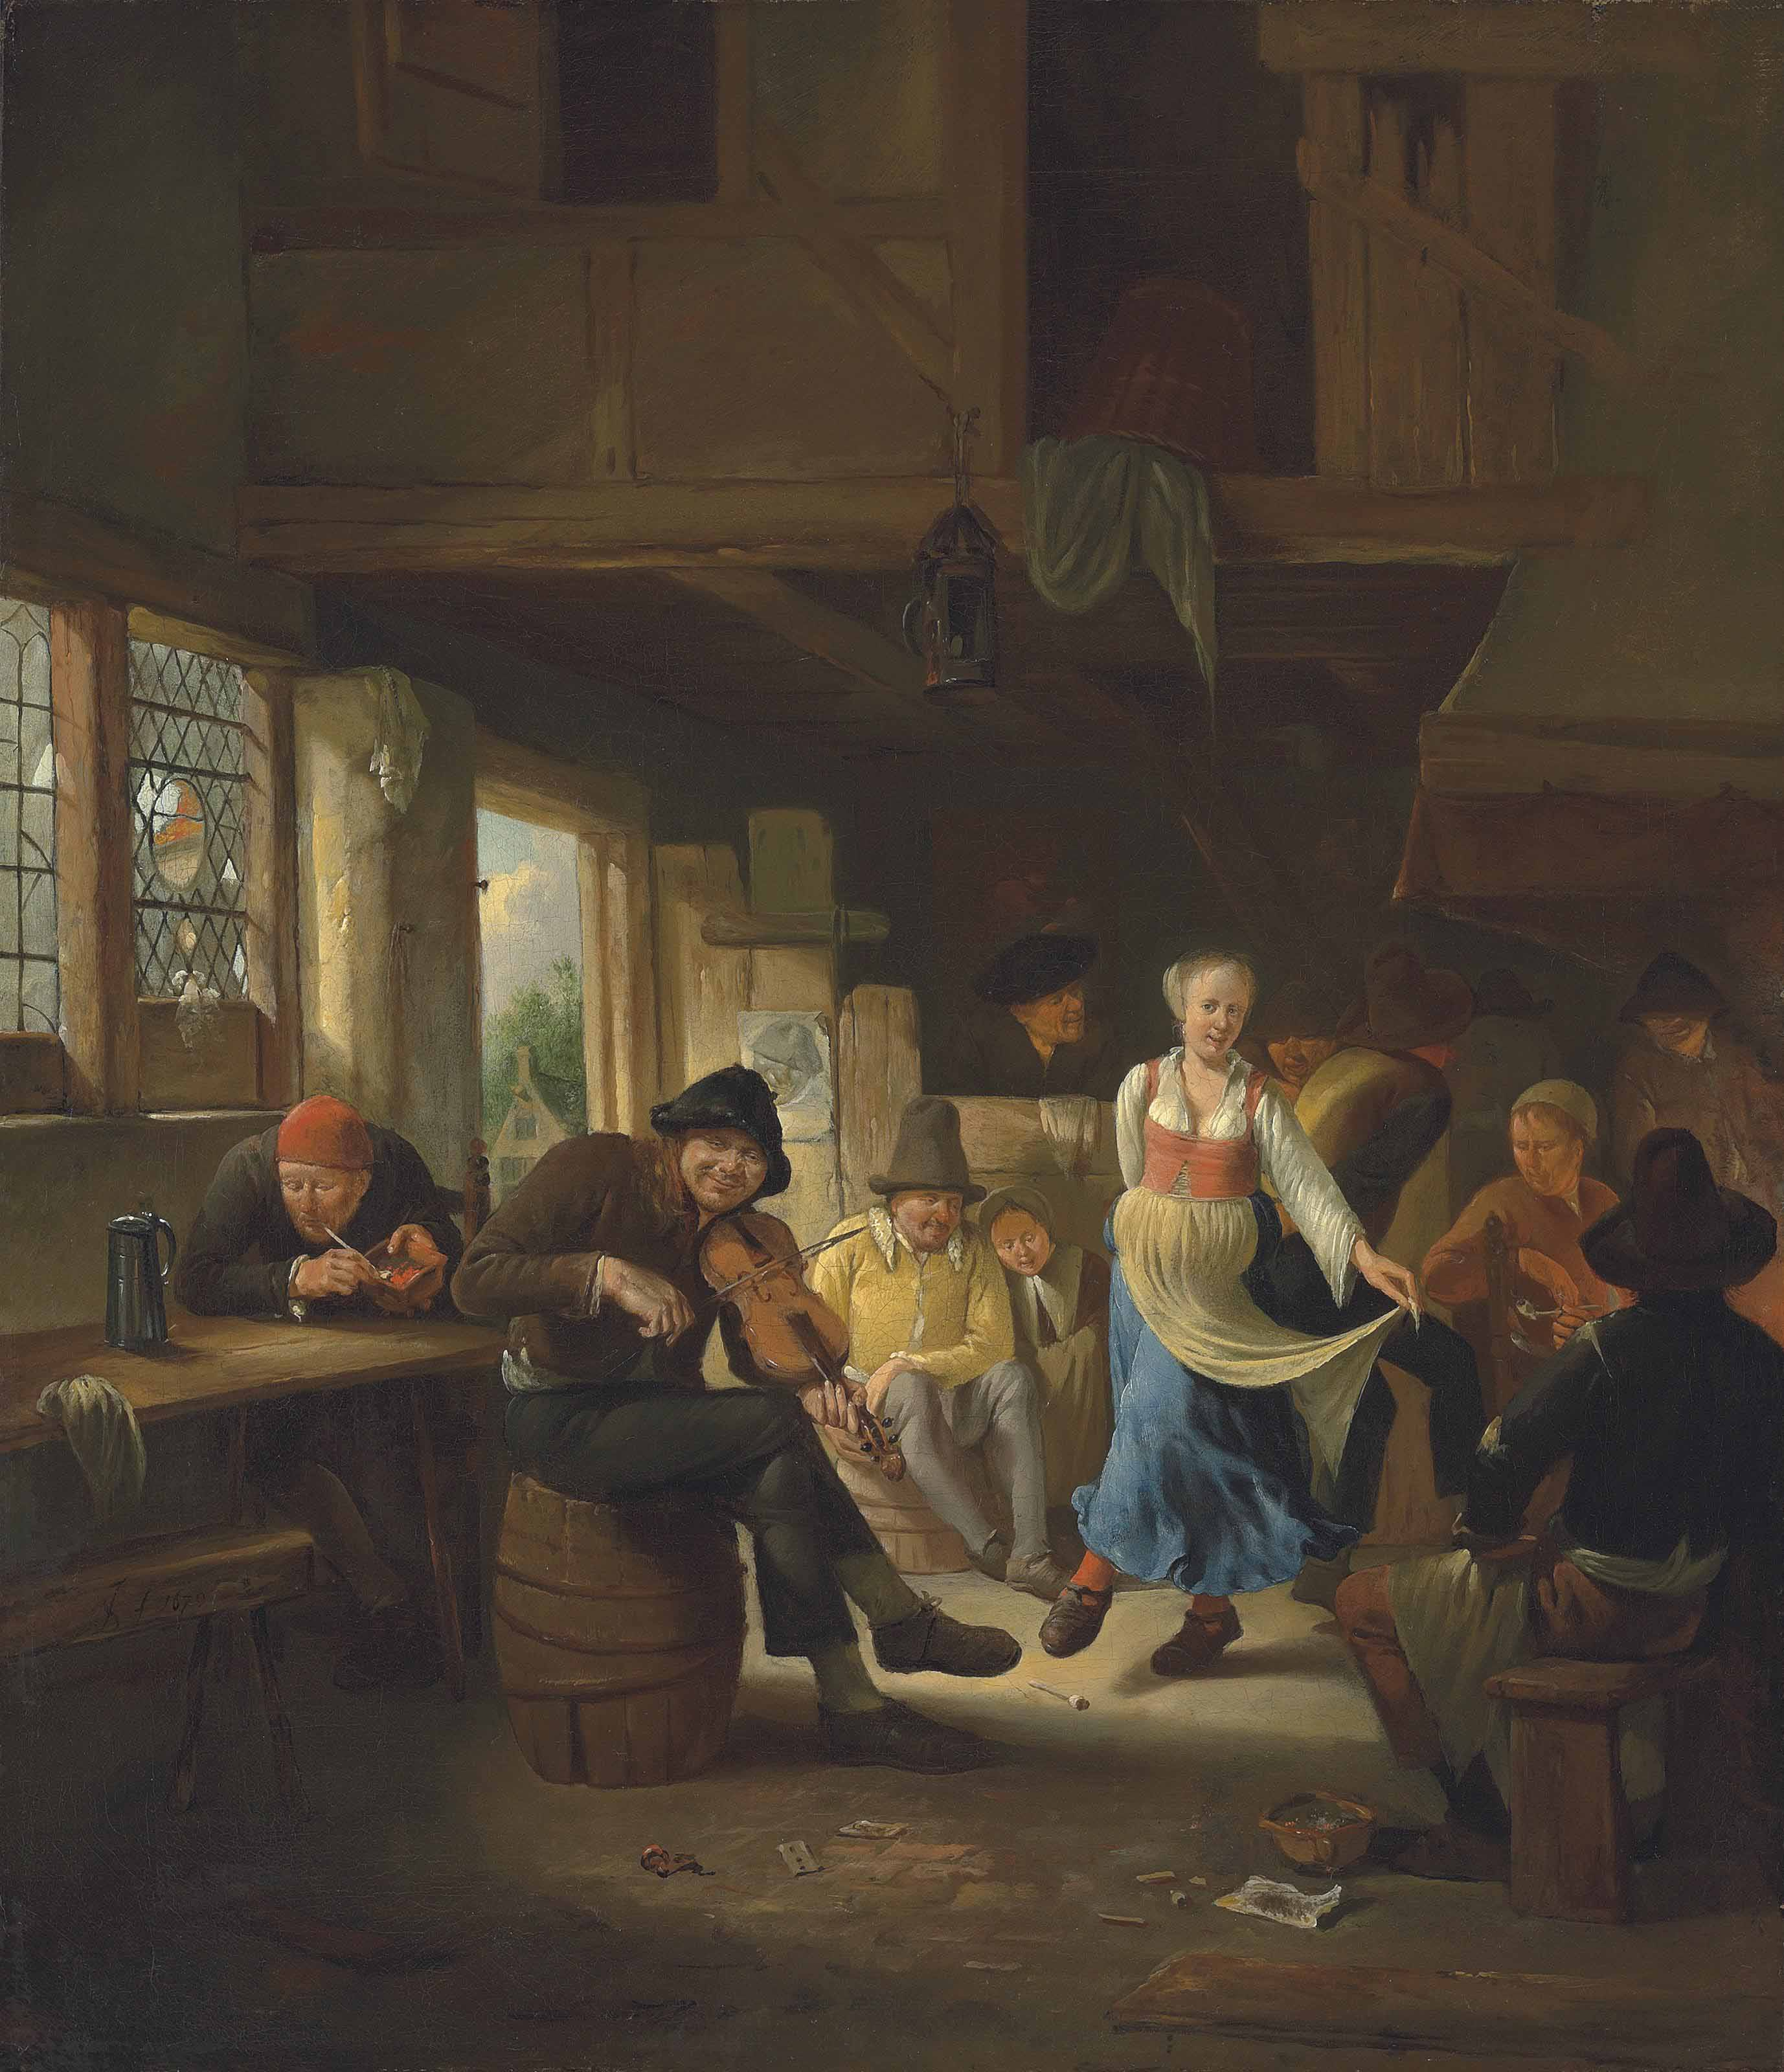 A tavern interior with a woman dancing, musicians and other figures merrymaking